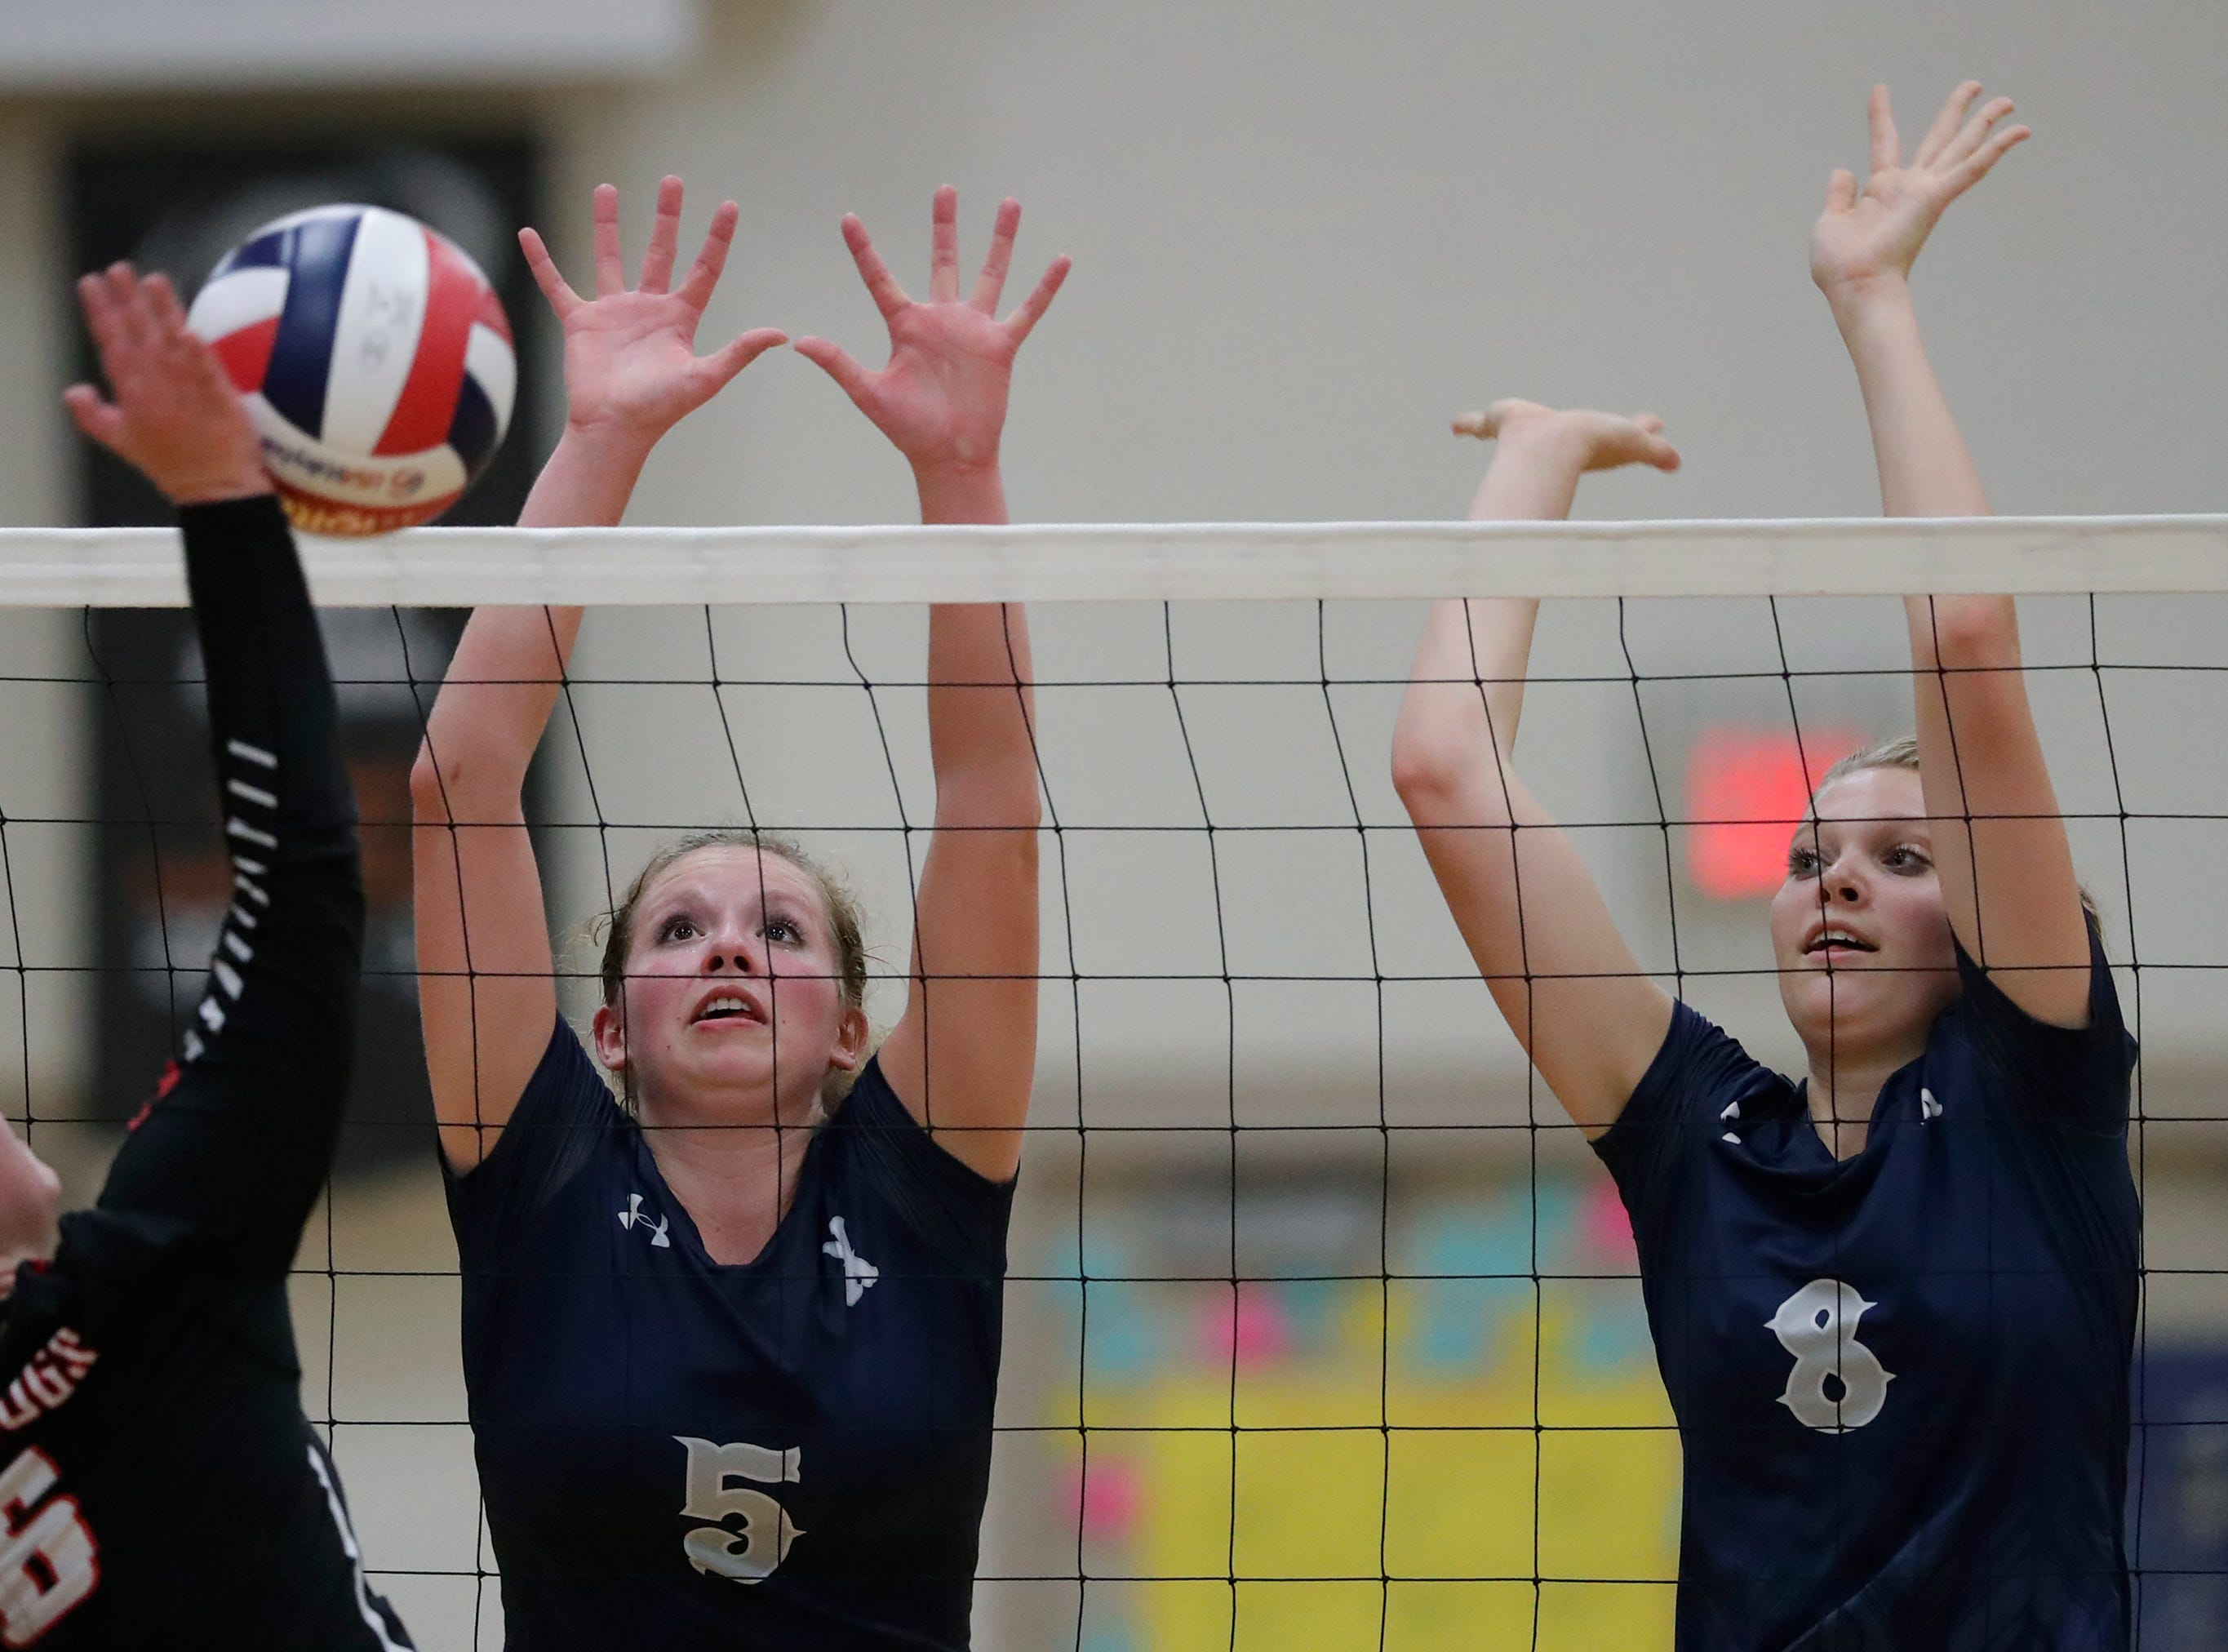 Xavier High School's Emma Vosters (5) and Morgan Michalkiewicz (8) block against New London High School's Megan Millard (6) during their girls volleyball match Thursday, Sept. 13, 2018, in Appleton, Wis. 